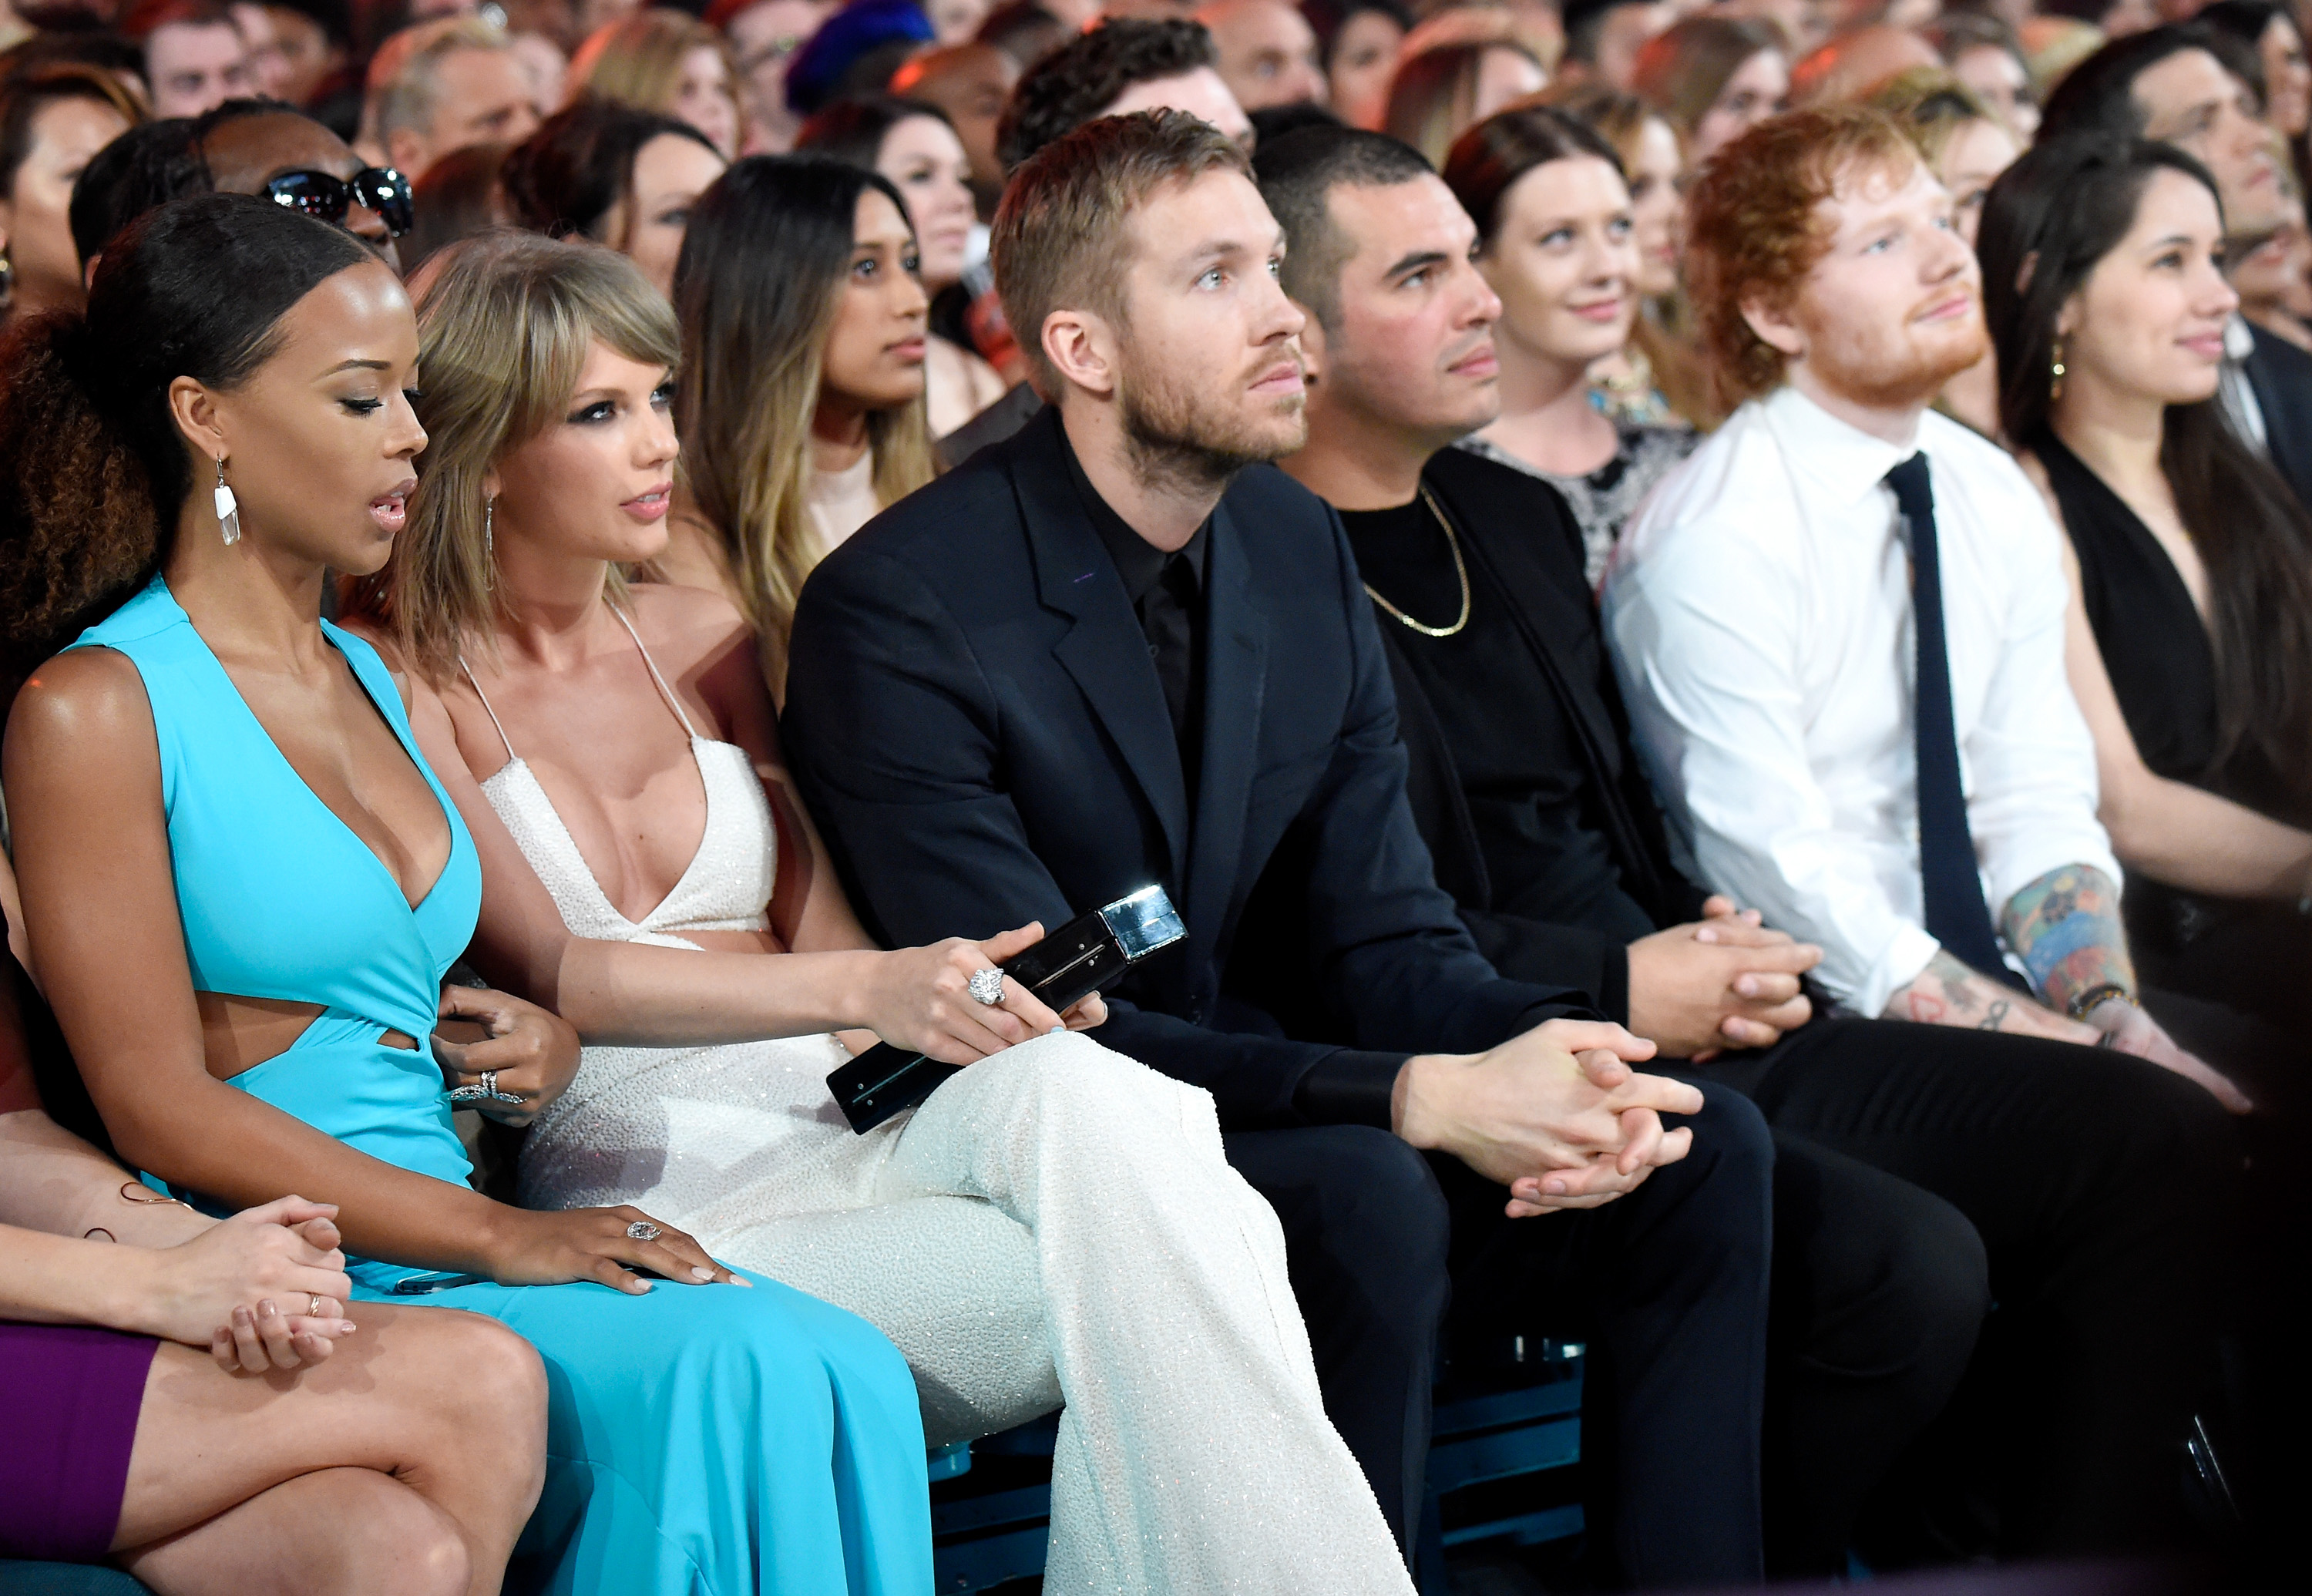 LAS VEGAS, NV - MAY 17:  Recording artists Taylor Swift, Calvin Harris and Ed Sheeran attend the 2015 Billboard Music Awards at MGM Grand Garden Arena on May 17, 2015 in Las Vegas, Nevada.  (Photo by Kevin Mazur/BMA2015/WireImage)